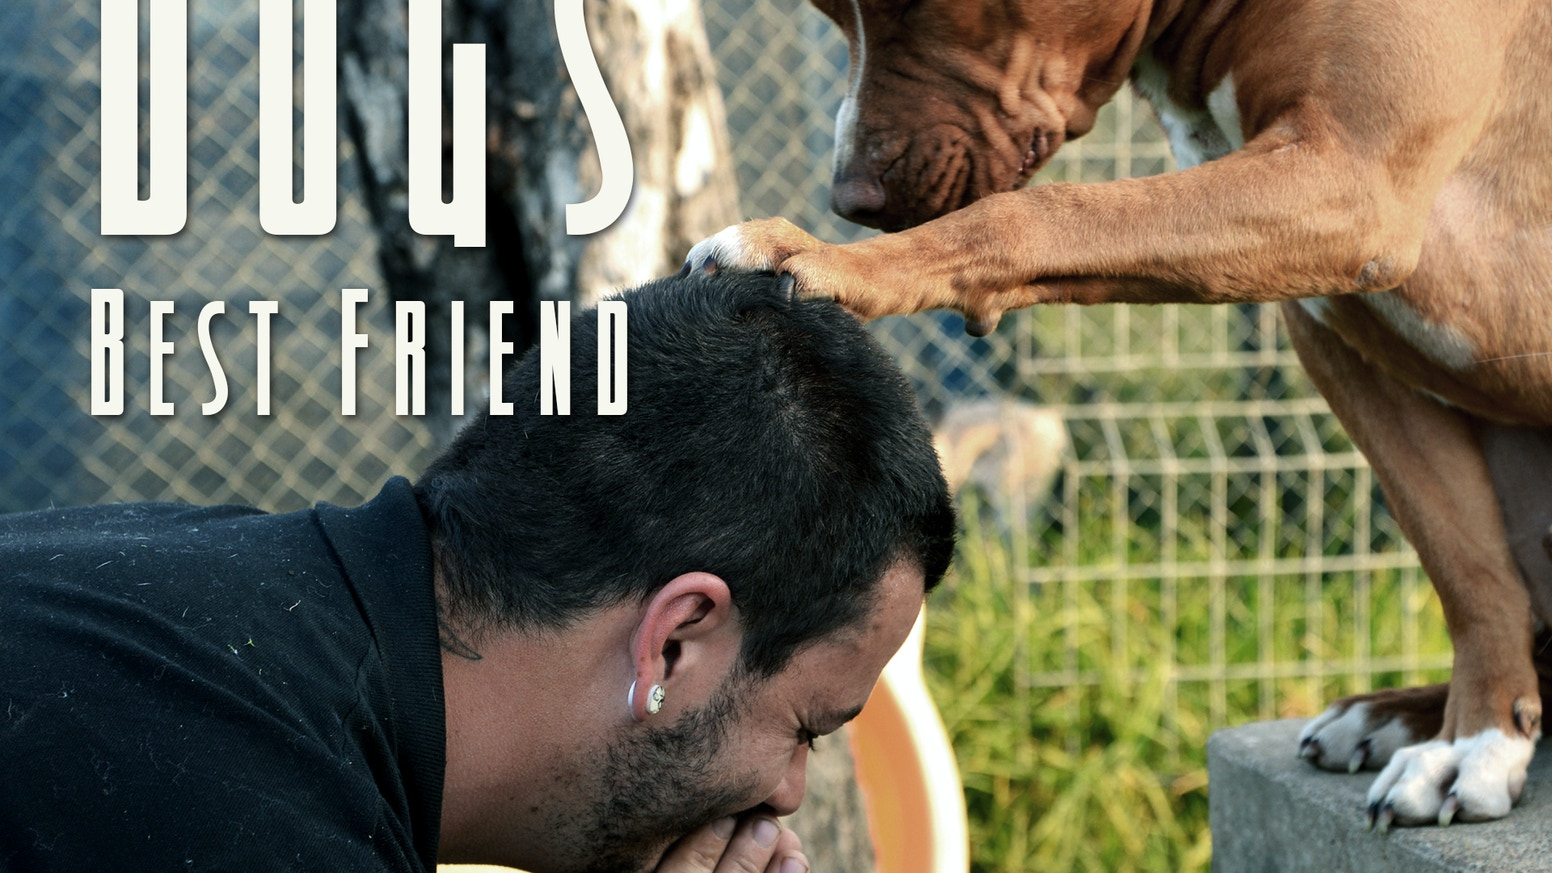 A documentary film that follows the journey of one man and his life's work, to rehabilitate man's best friend, one dog at a time.